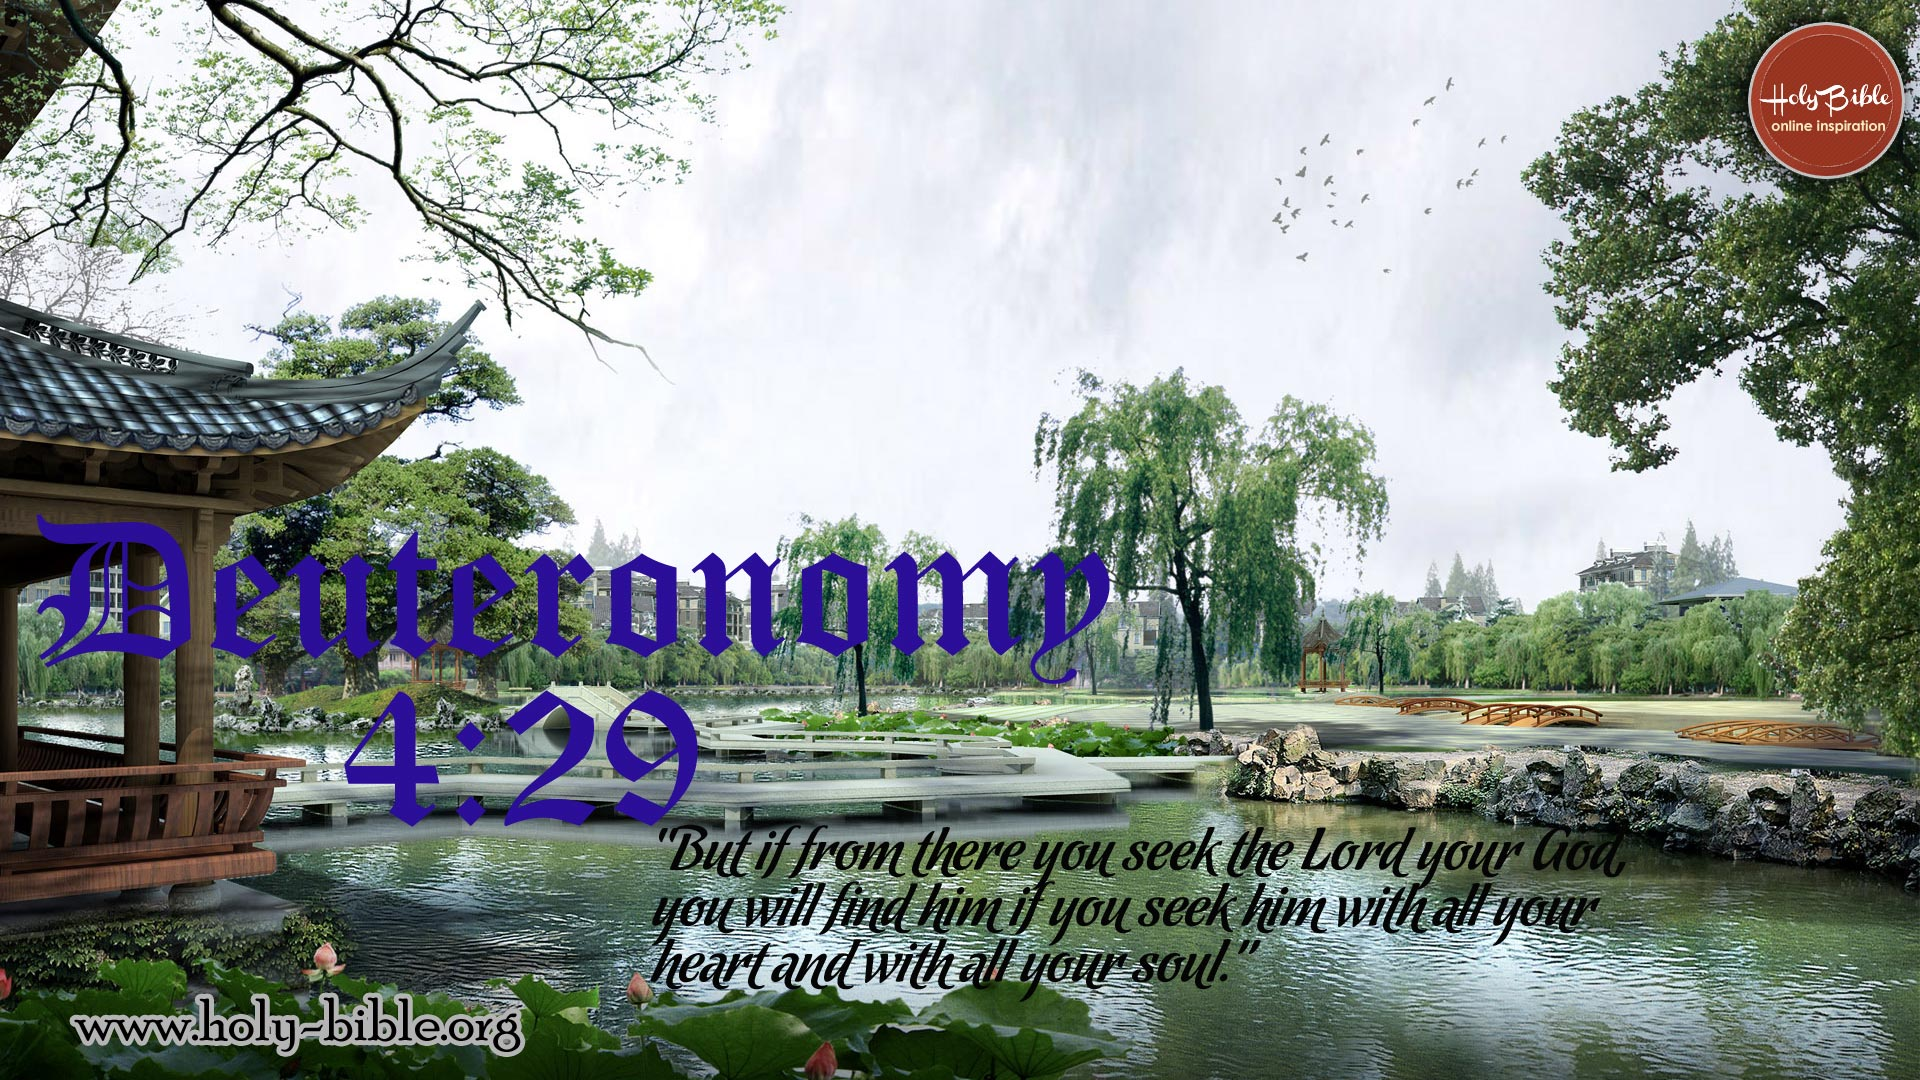 Bible Verse of the day - Deuteronomy 4:29